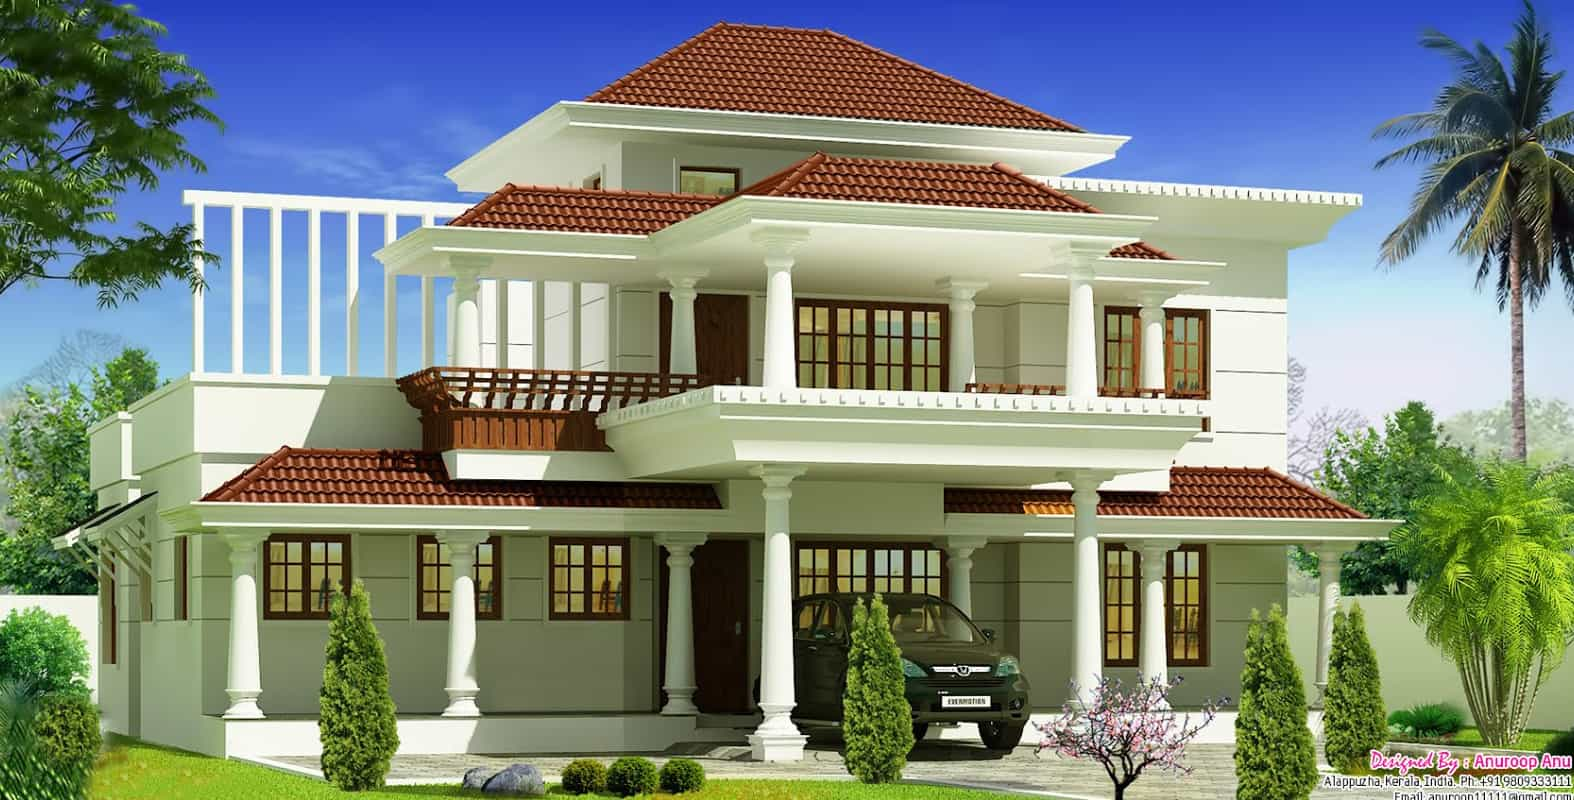 4bhk house plans keralahouseplanner for Home plan com